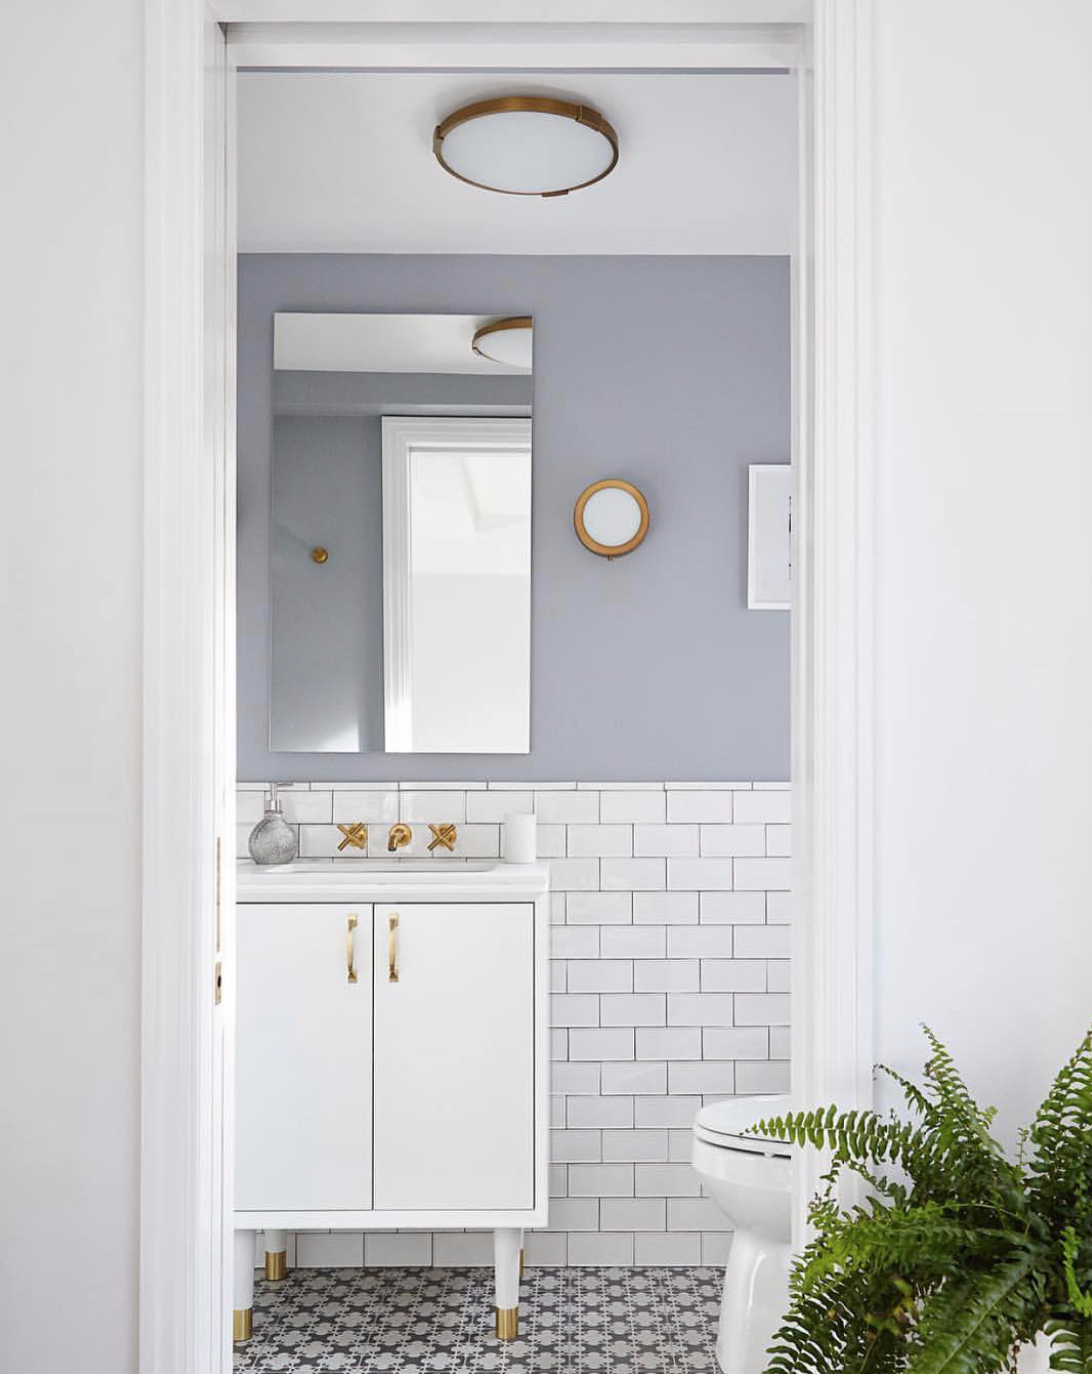 @lra_architecture  created a bright and airy powder room through the combination of sleek fixtures and a clean color palette.